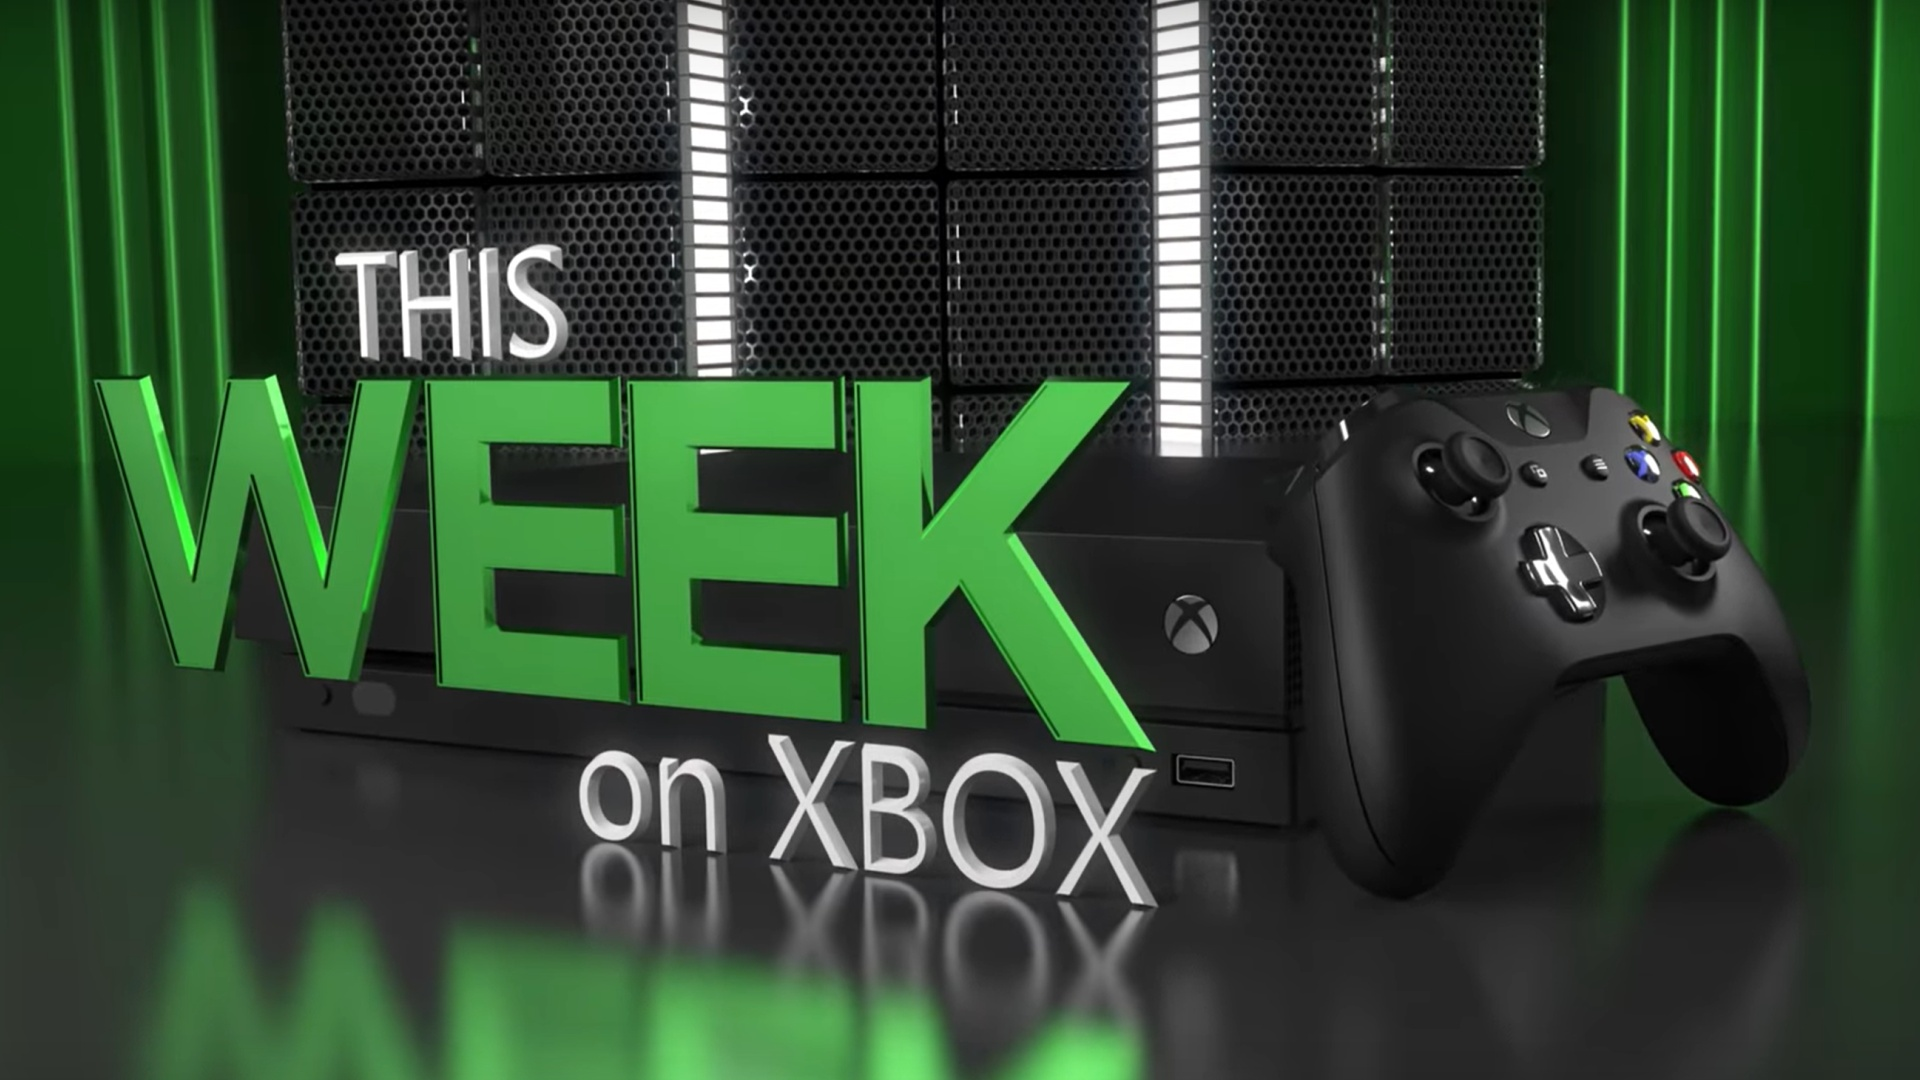 Video For This Week on Xbox: April 24, 2020